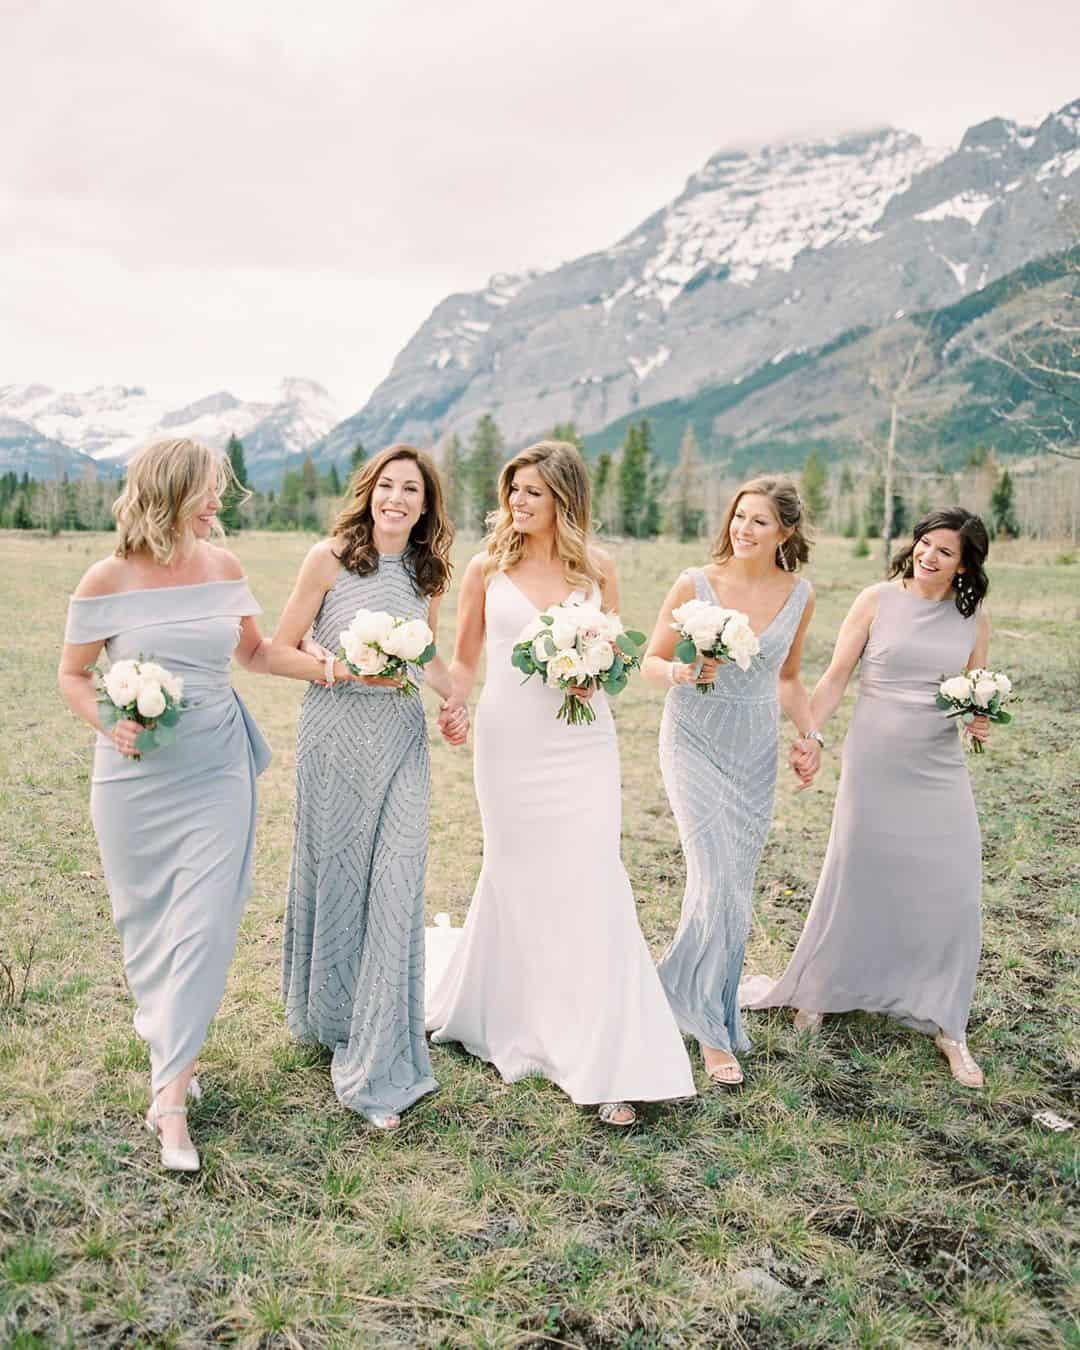 How to choose bridesmaid dress?